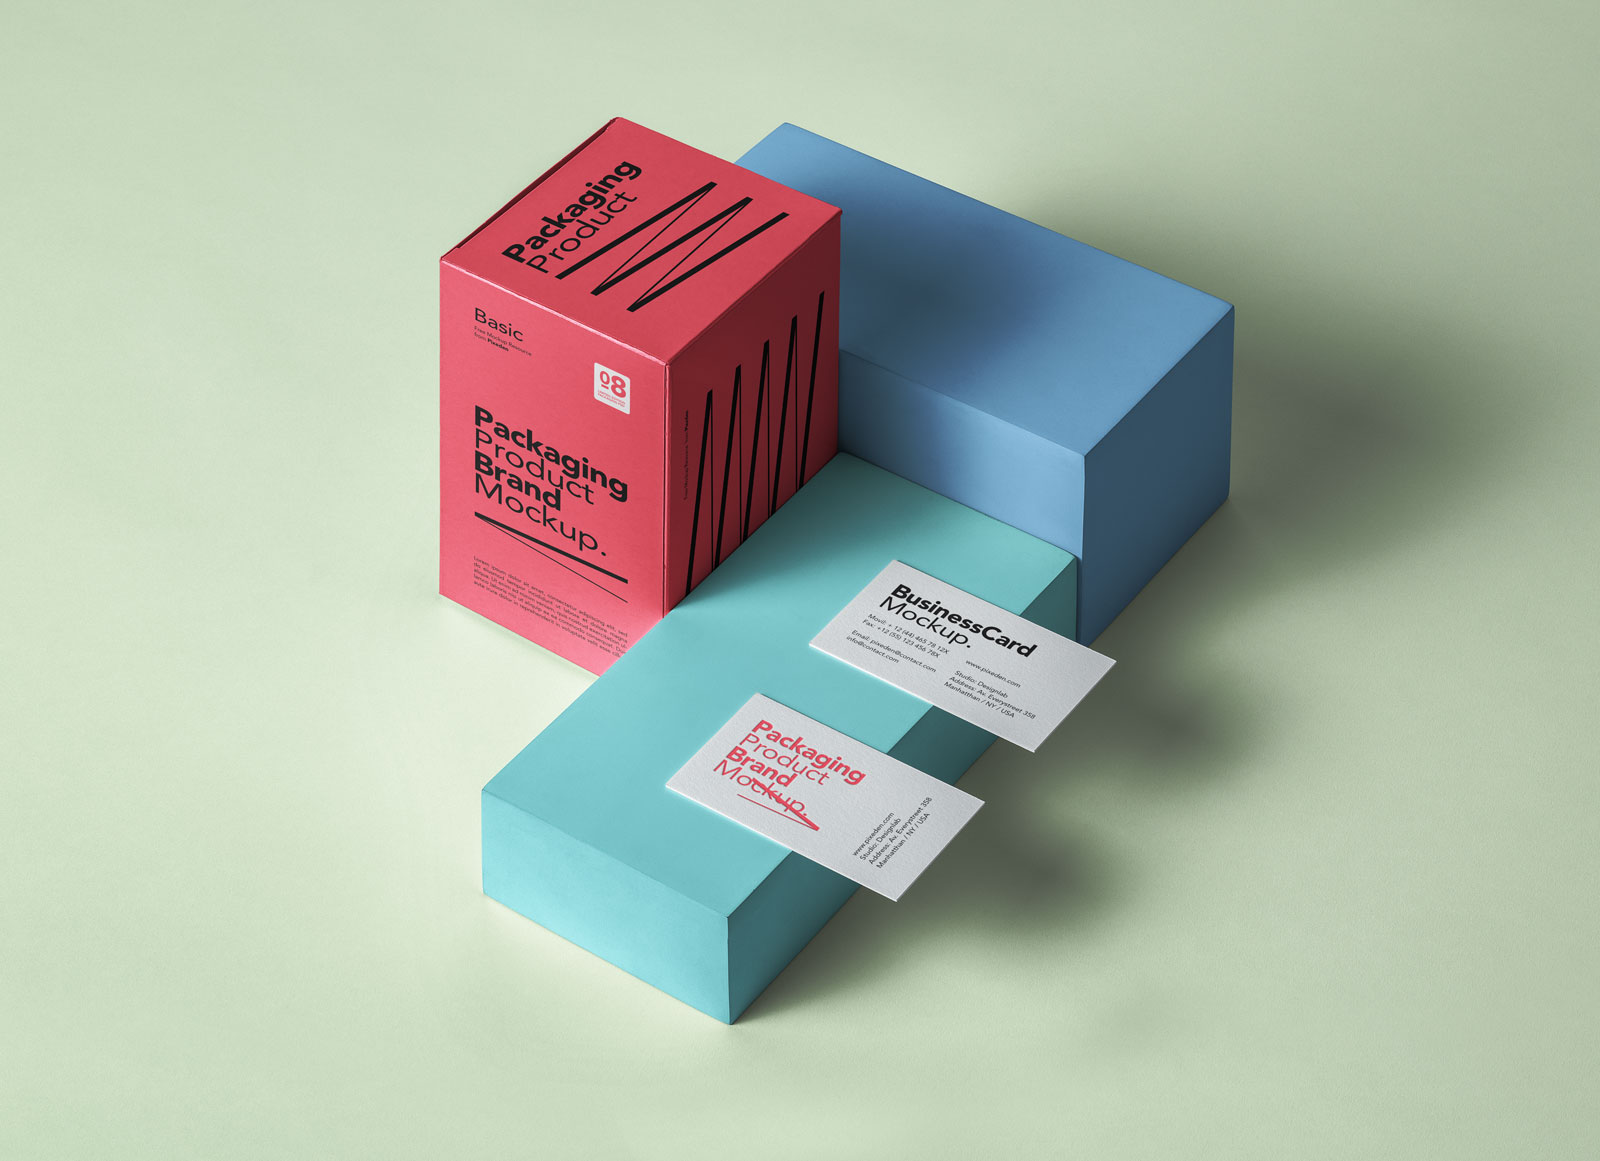 Free-Box-Product-Packaging-& Business Card Mockup PSD